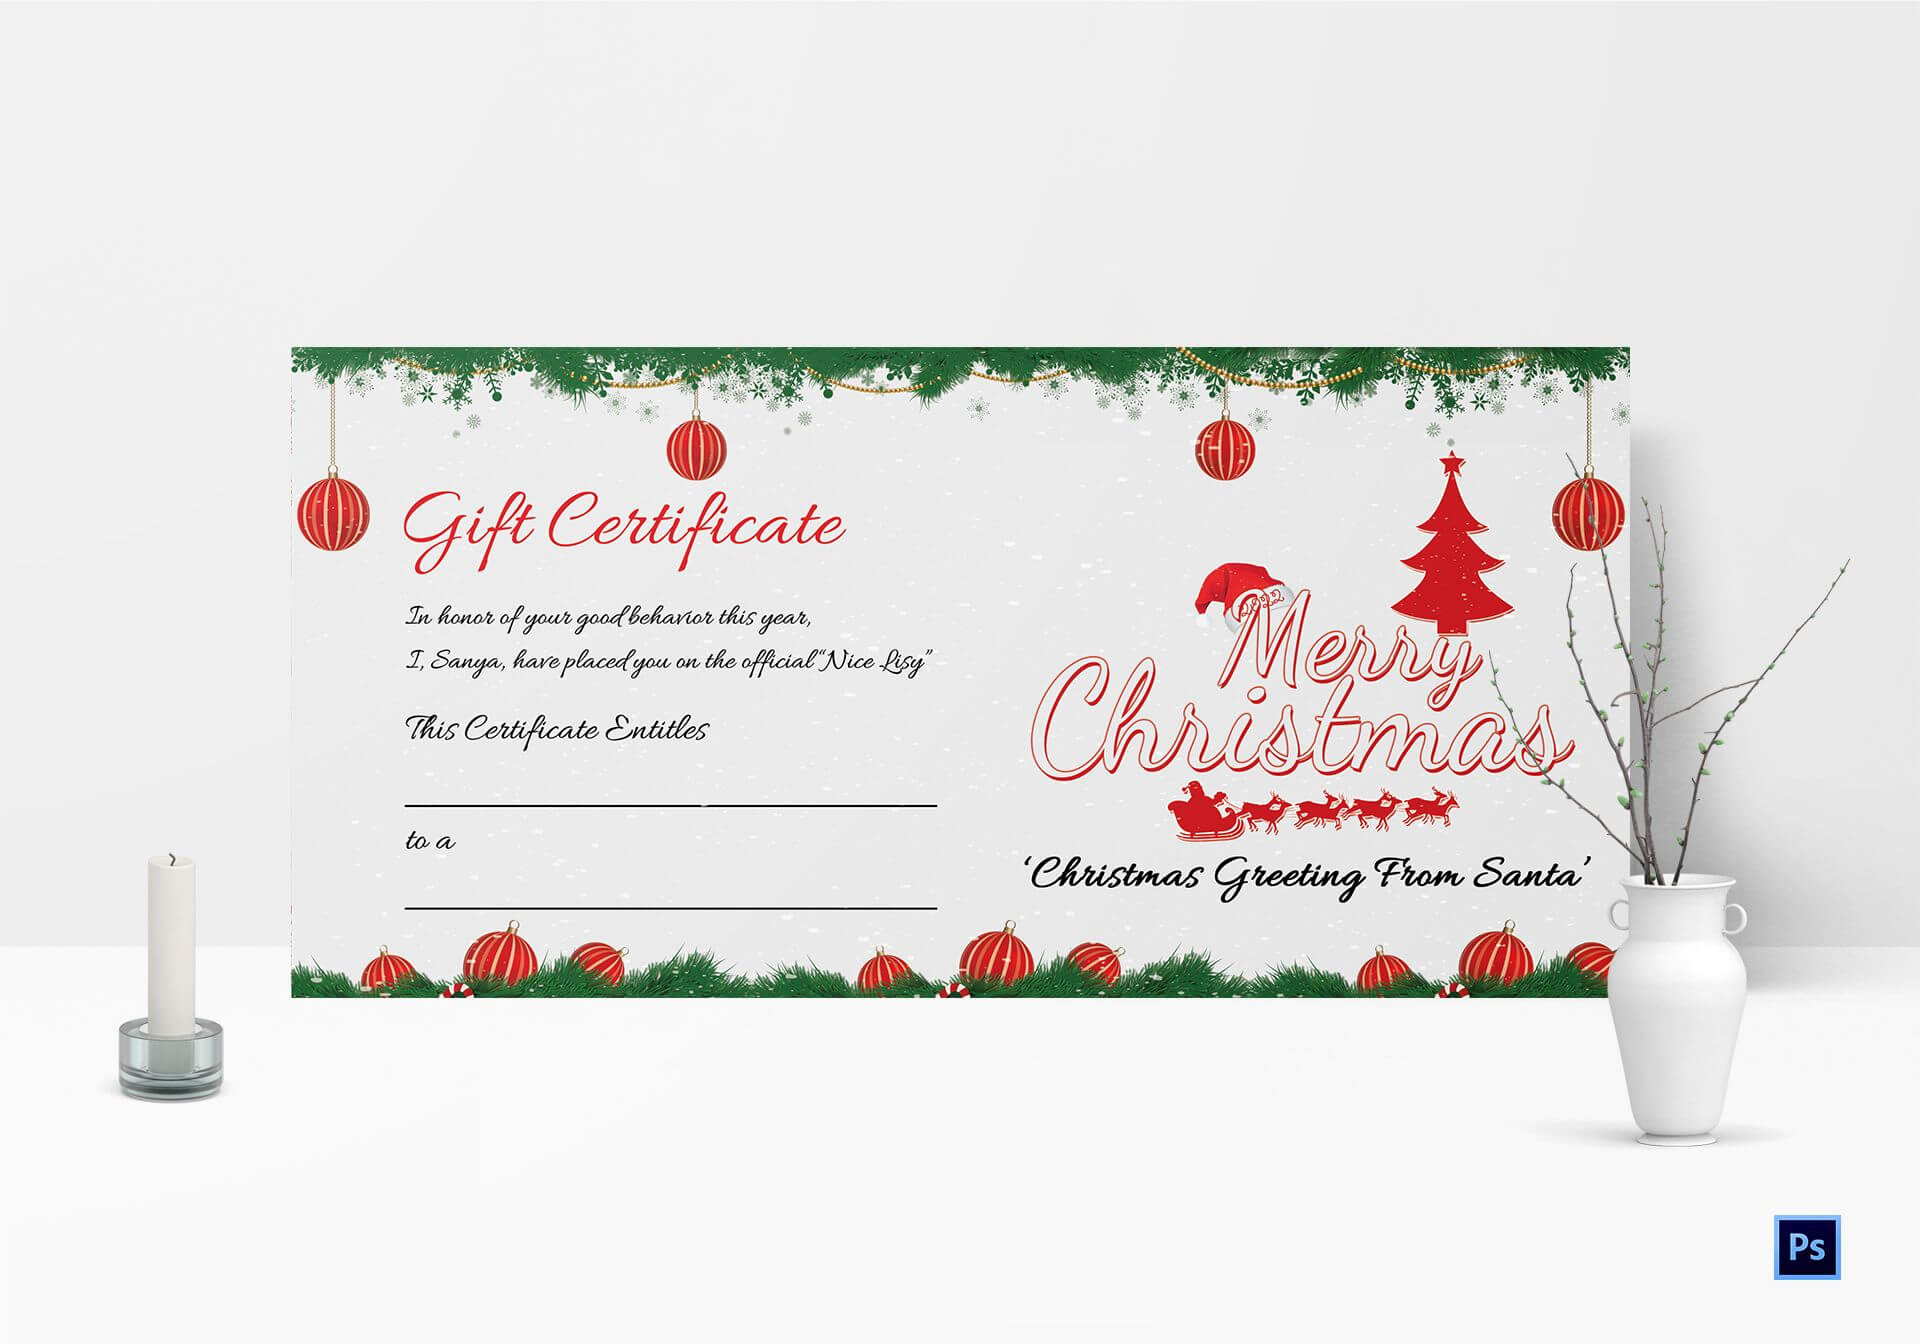 Christmas Gift Certificate Template Free - Calep.midnightpig.co Pertaining To Free Christmas Gift Certificate Templates